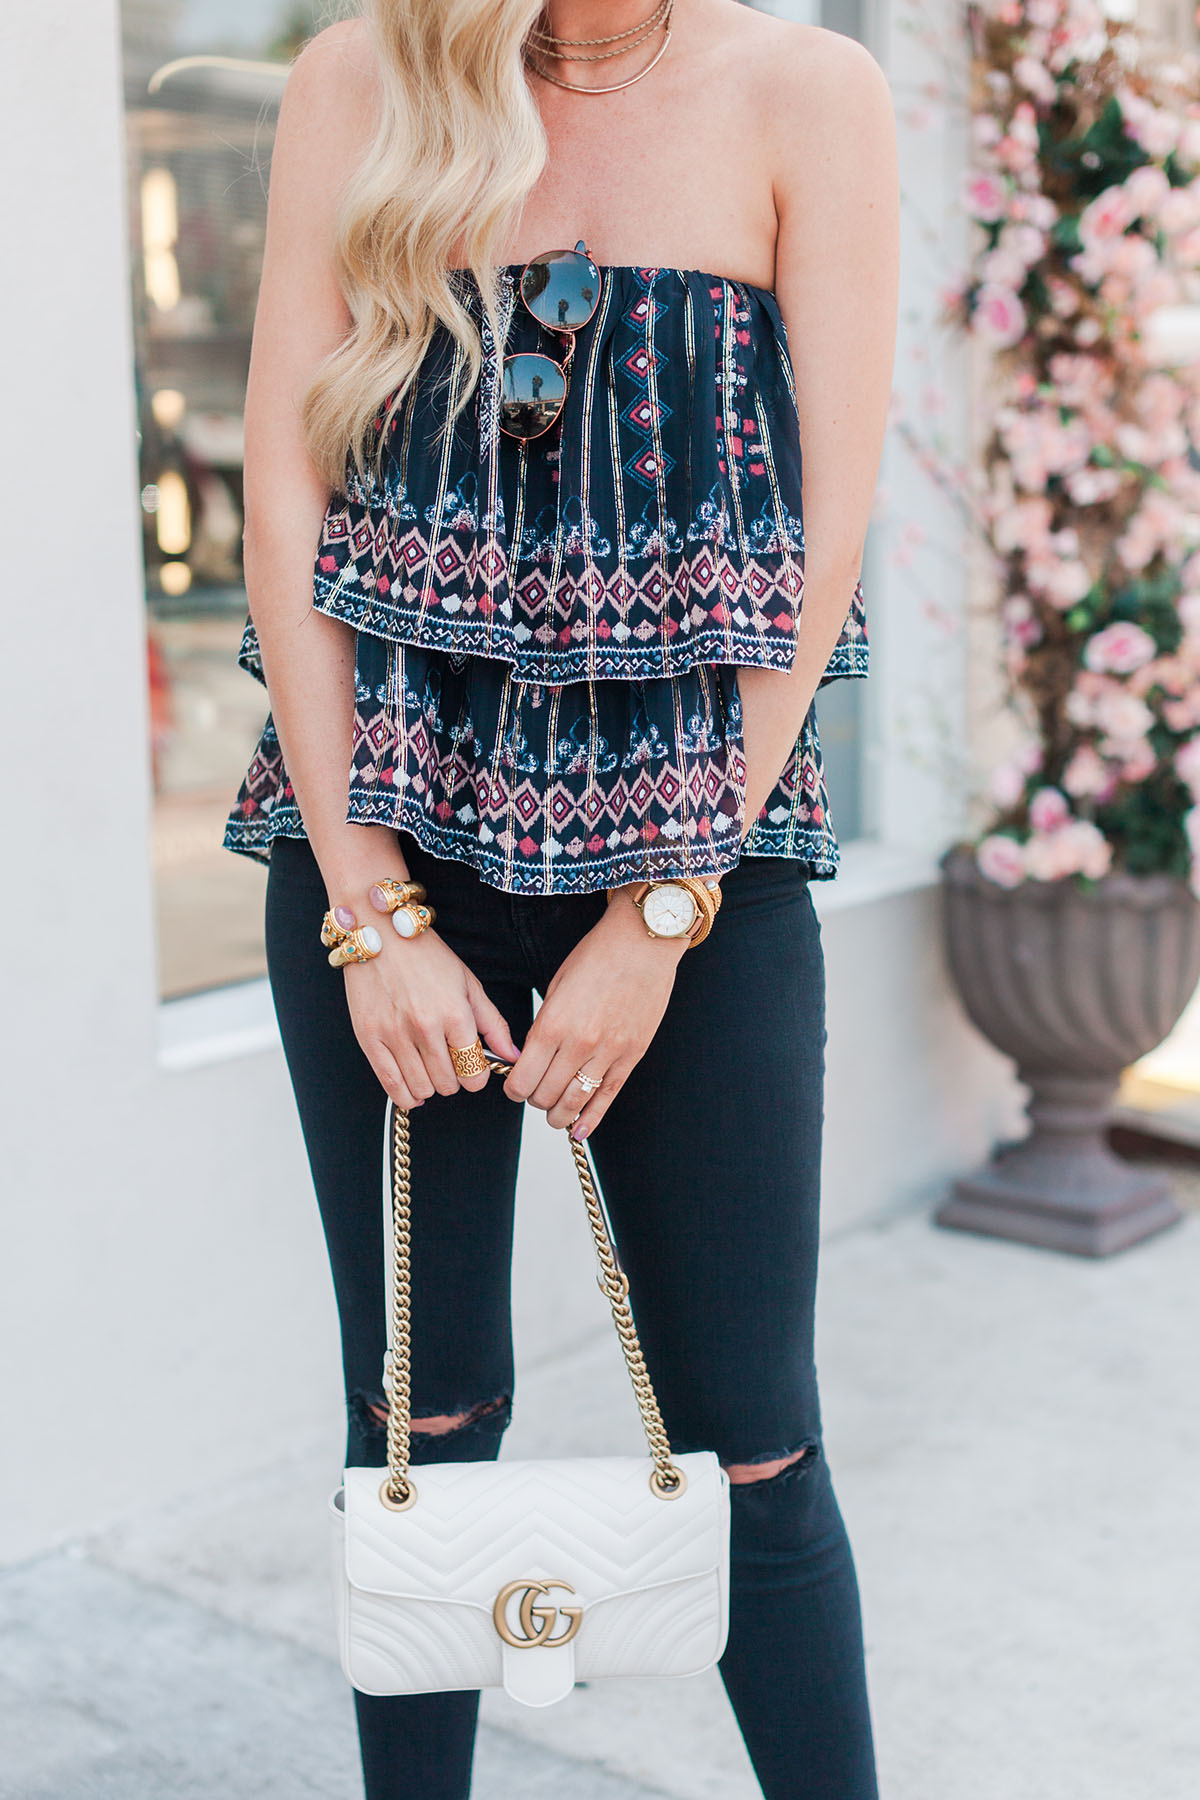 Joie Convertible Top   Late Summer Outfit Ideas